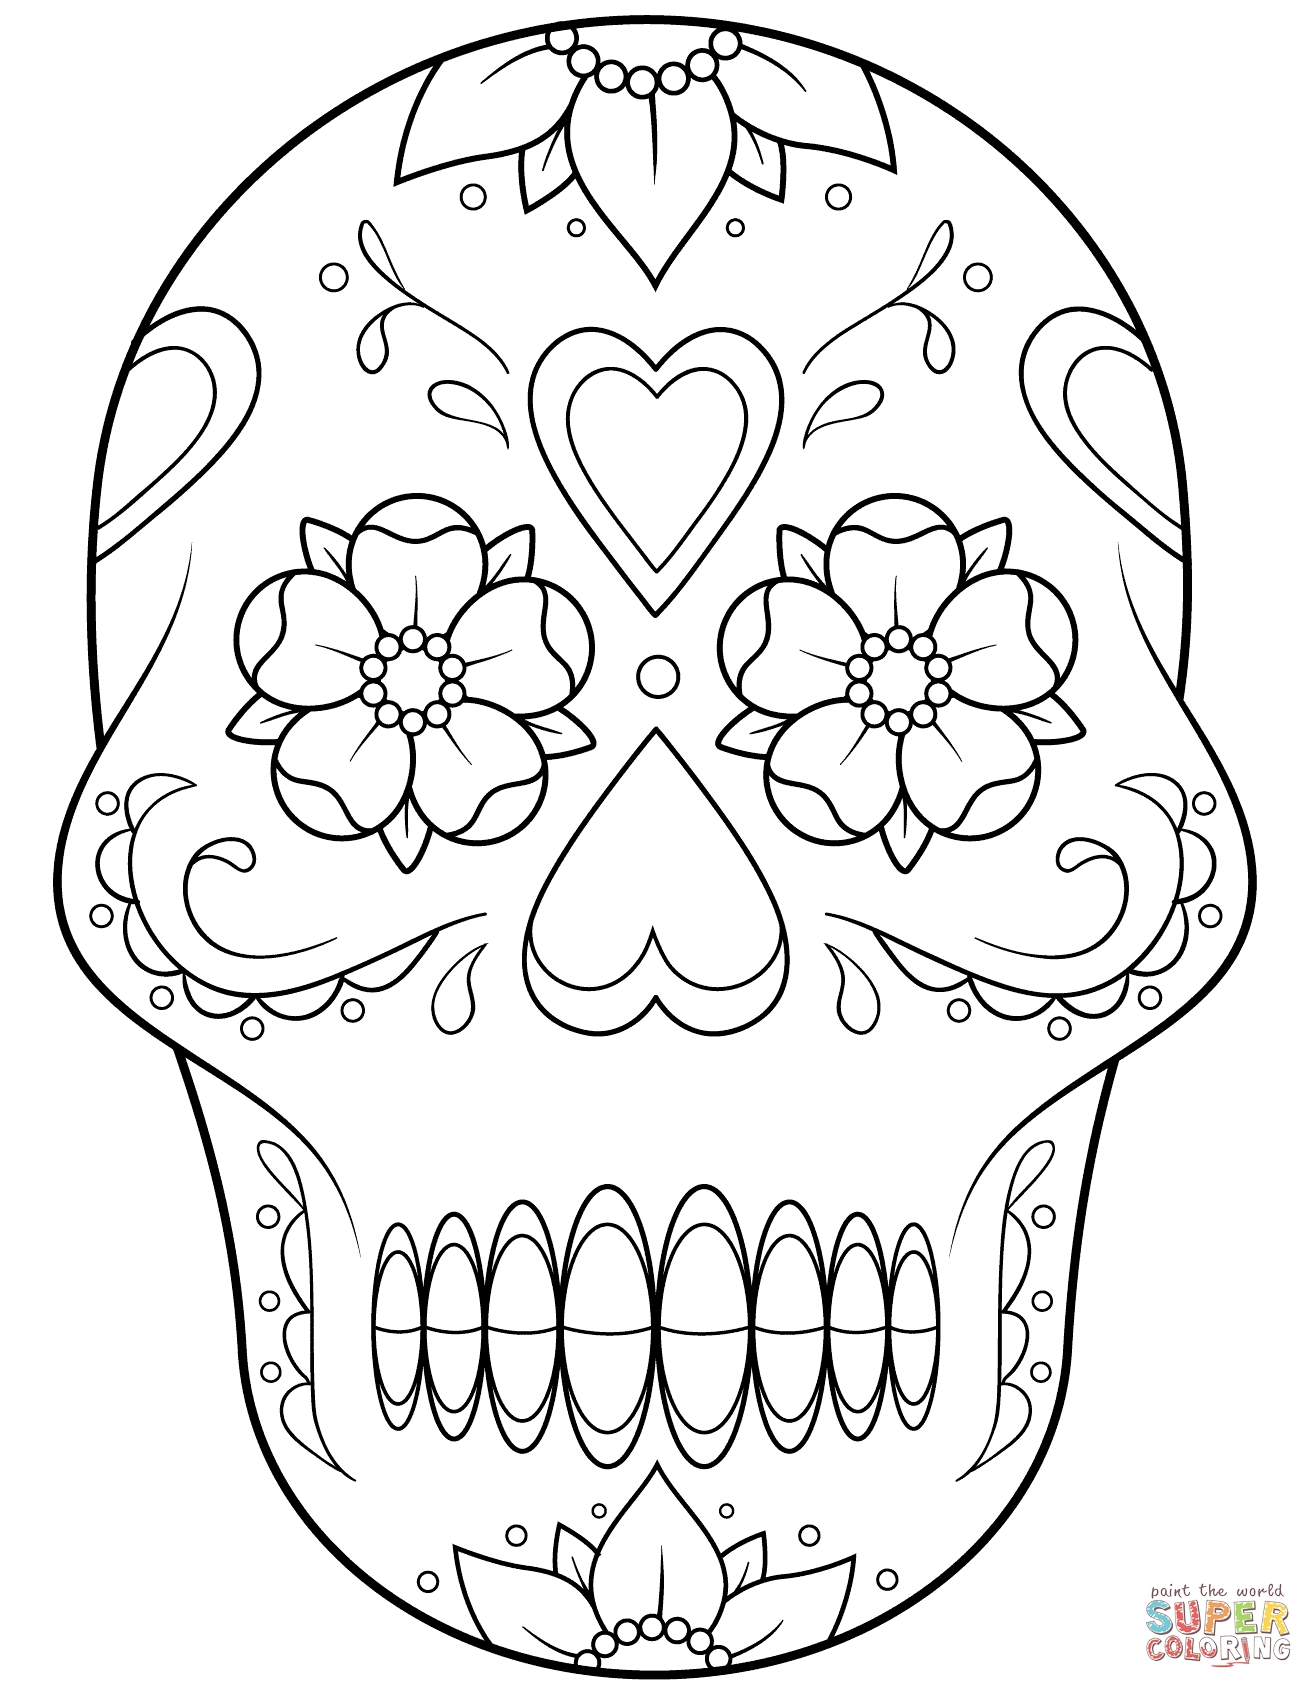 Sugar Skull With Flowers And Hearts Coloring Page | Free Printable - Free Printable Sugar Skull Coloring Pages